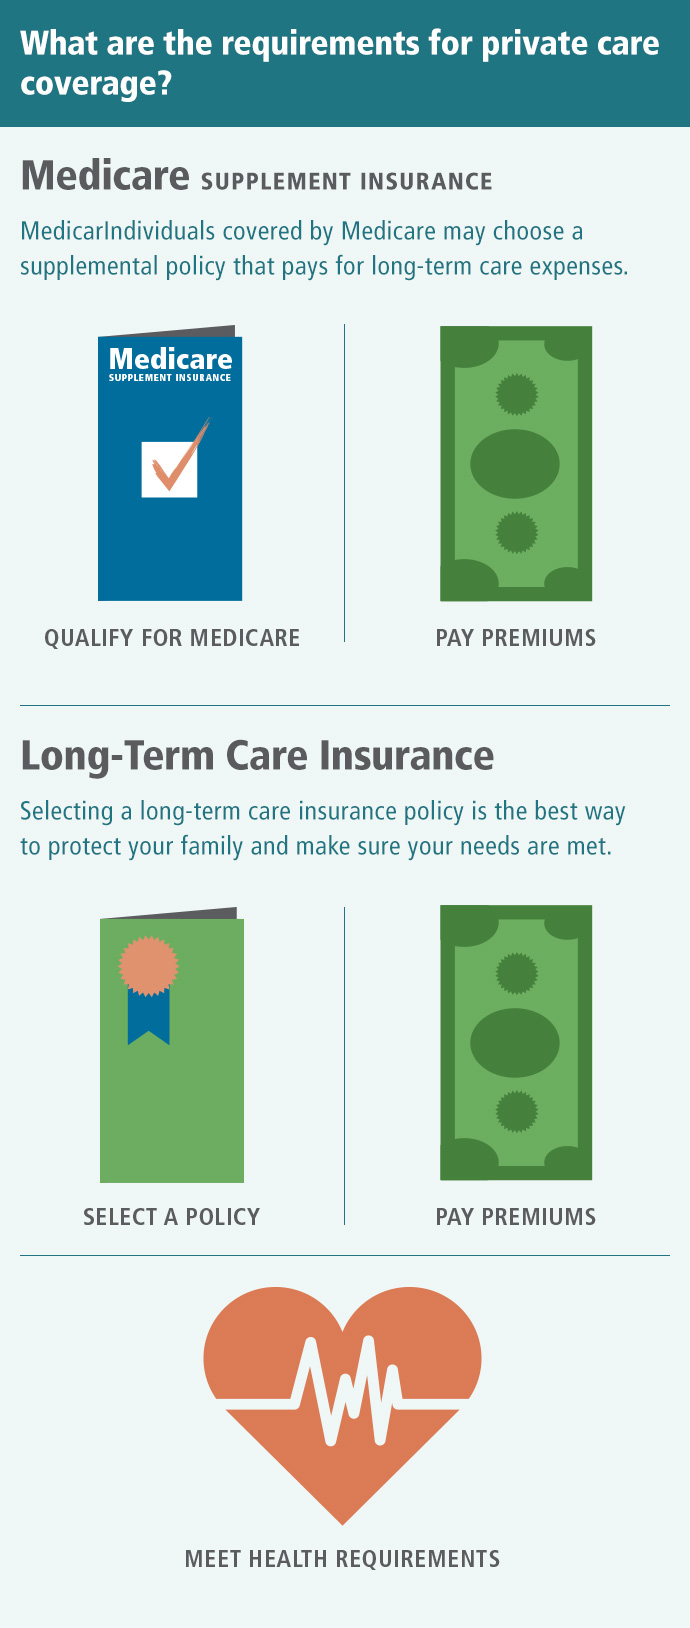 What are the requirements for private care coverage? Medicare supplement insurance may pay for long-term care expenses. To purchase a policy, you must qualify for Medicare and pay the policy's premiums. Long-term care insurance is the best way to protect your family and make sure your long-term needs are met. To obtain coverage, you must select a policy that meets your needs, meet the policy's health requirements, and pay the premiums.